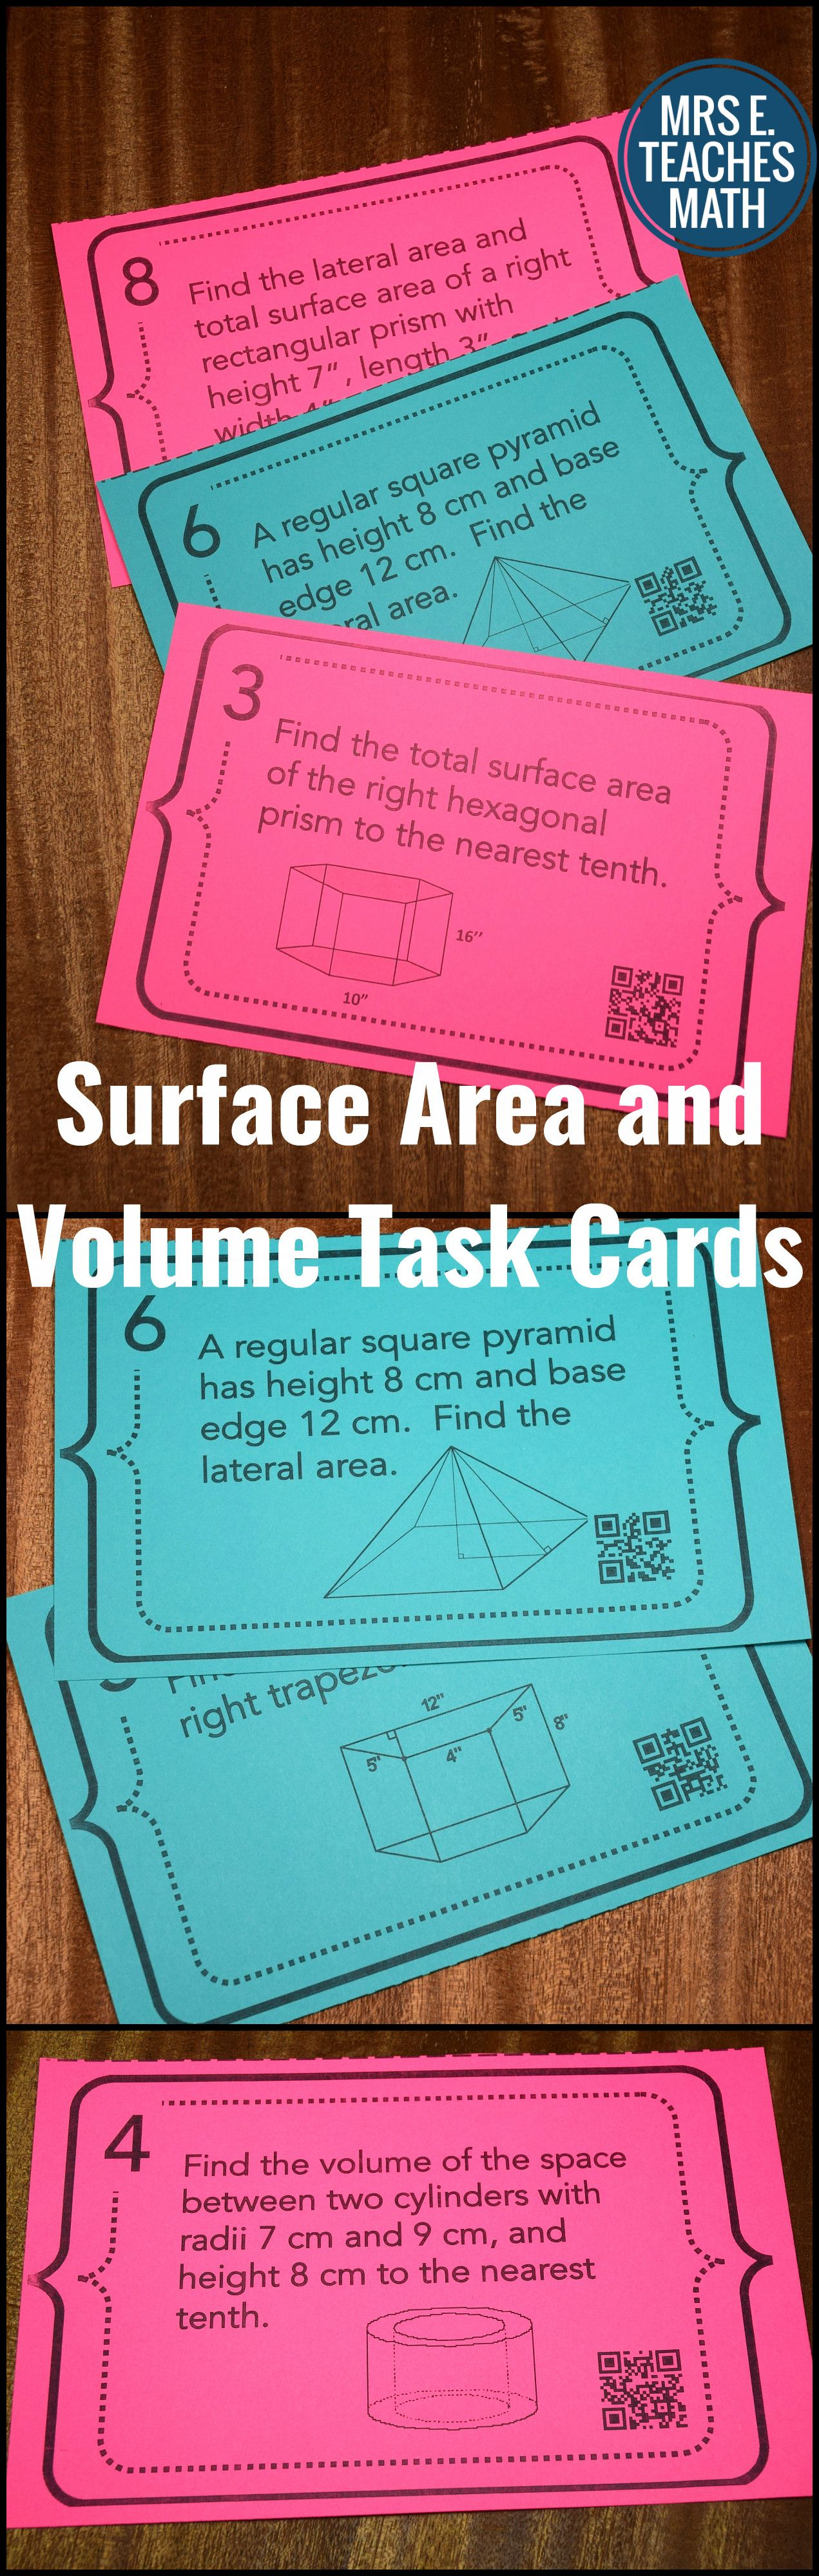 surface area and volume task cards math grades 7 12 teaching geometry geometry activities. Black Bedroom Furniture Sets. Home Design Ideas